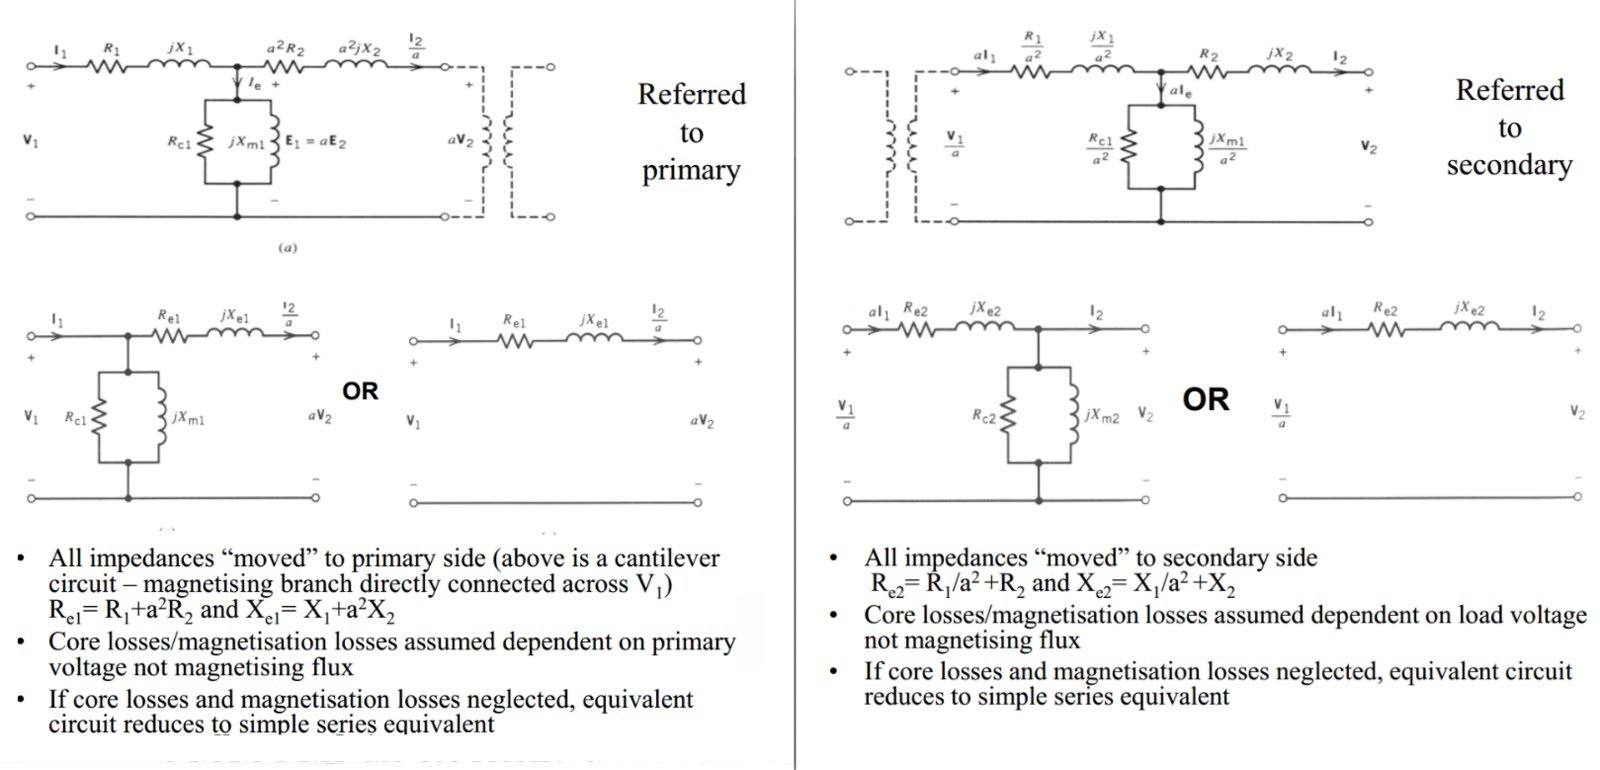 Transformers Electrical Engineering 3rd Year By Simplifying The Circuit With Equivalent Ac We Get Or Secondary Side Of Transformer And Realisation Is Made That Through Some Assumptions Can Be Simplified Even Further